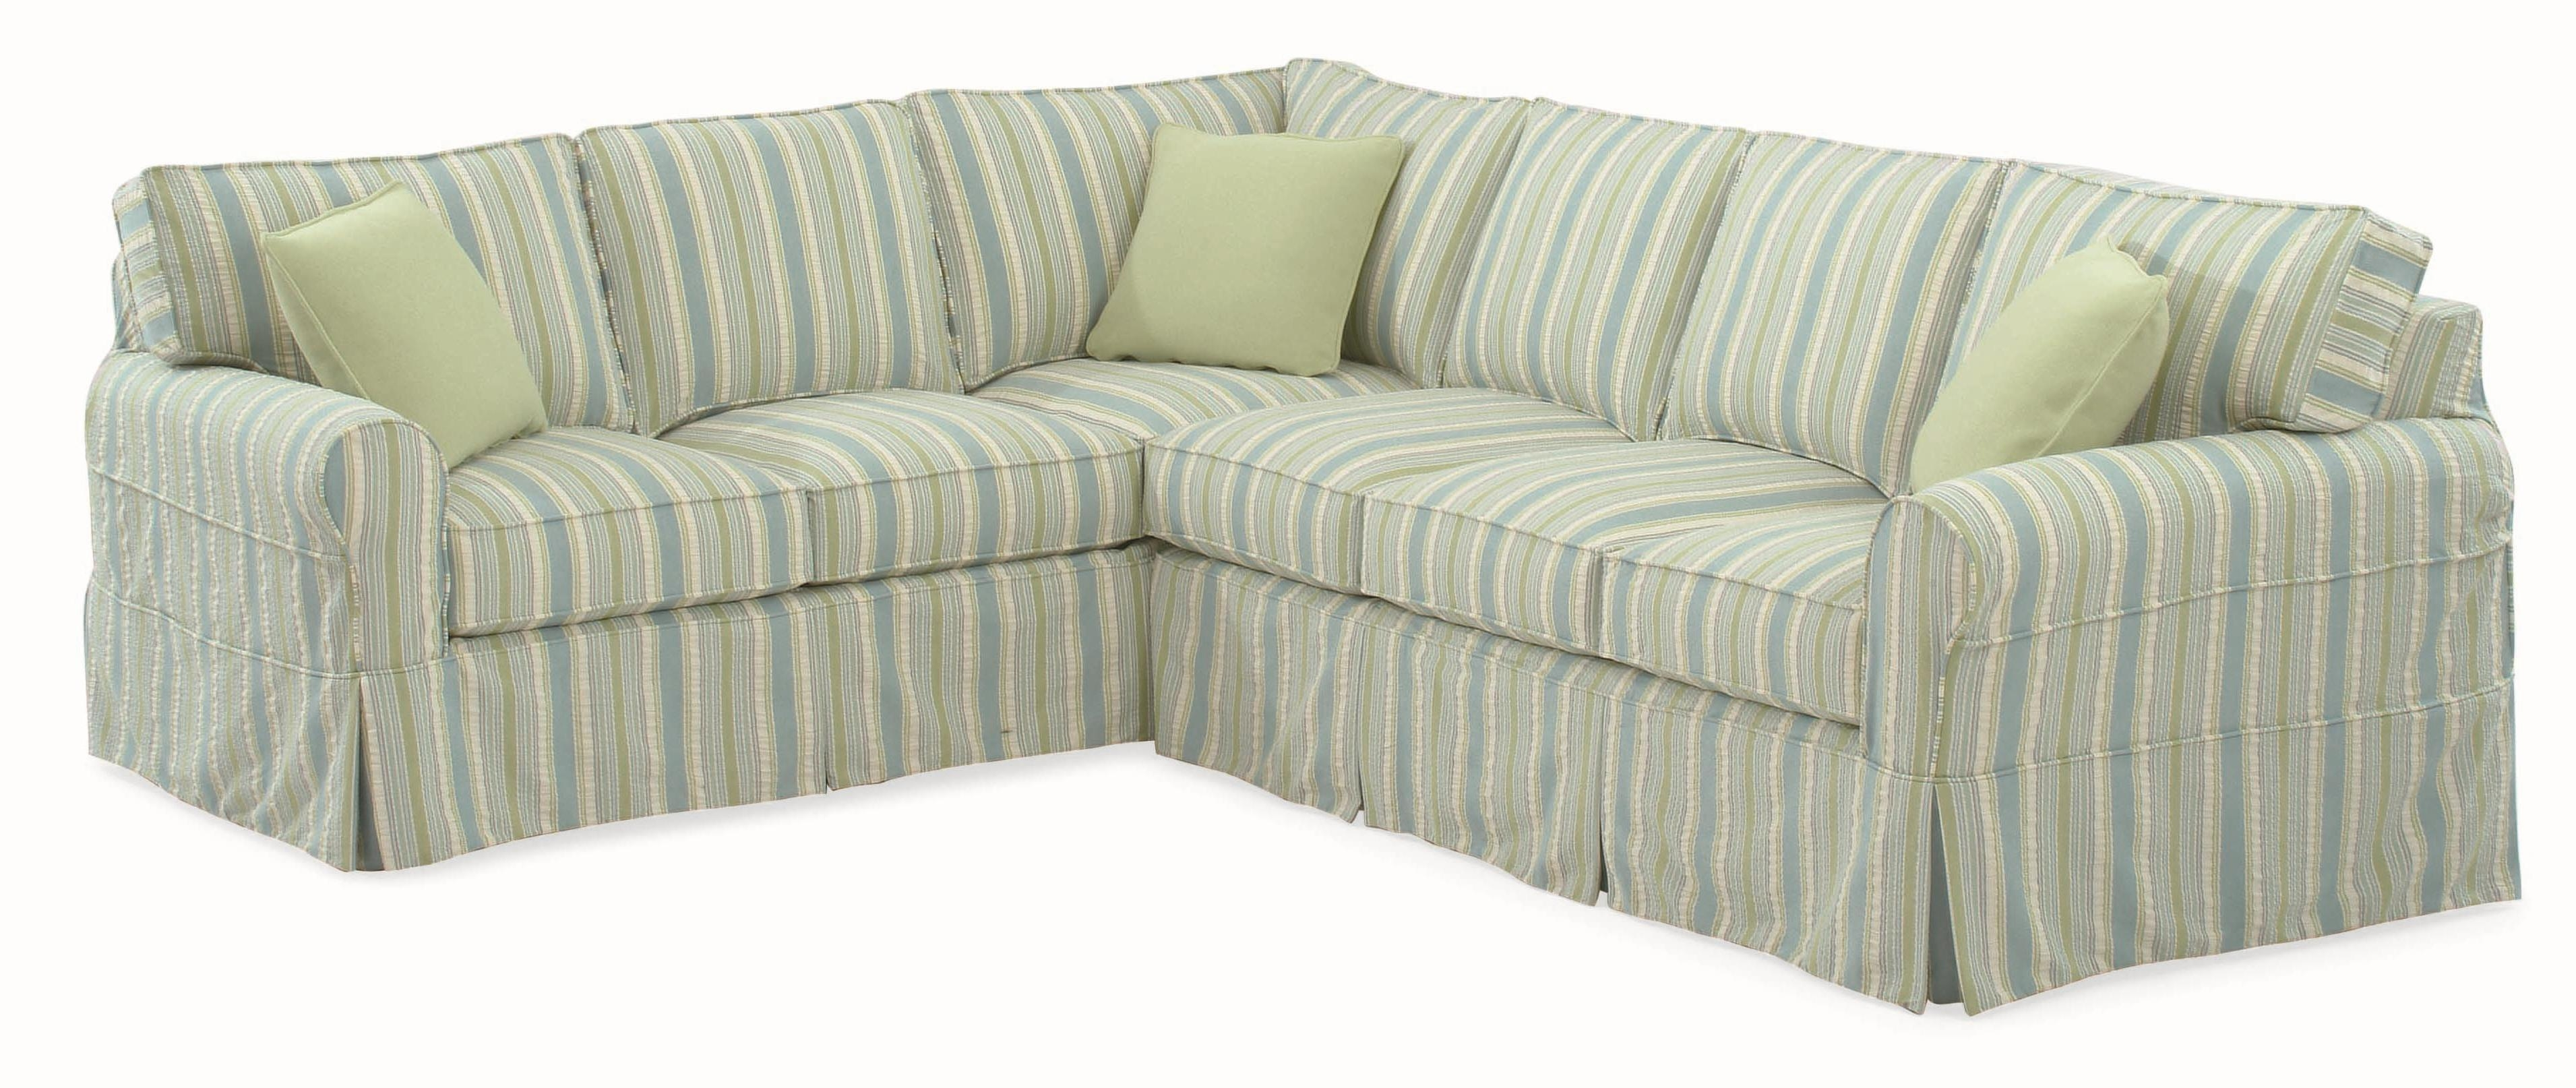 Furniture: L Shaped Couch Covers | Walmart Couch Covers For Slipcovers For Sectional Sofas With Recliners (Image 7 of 20)